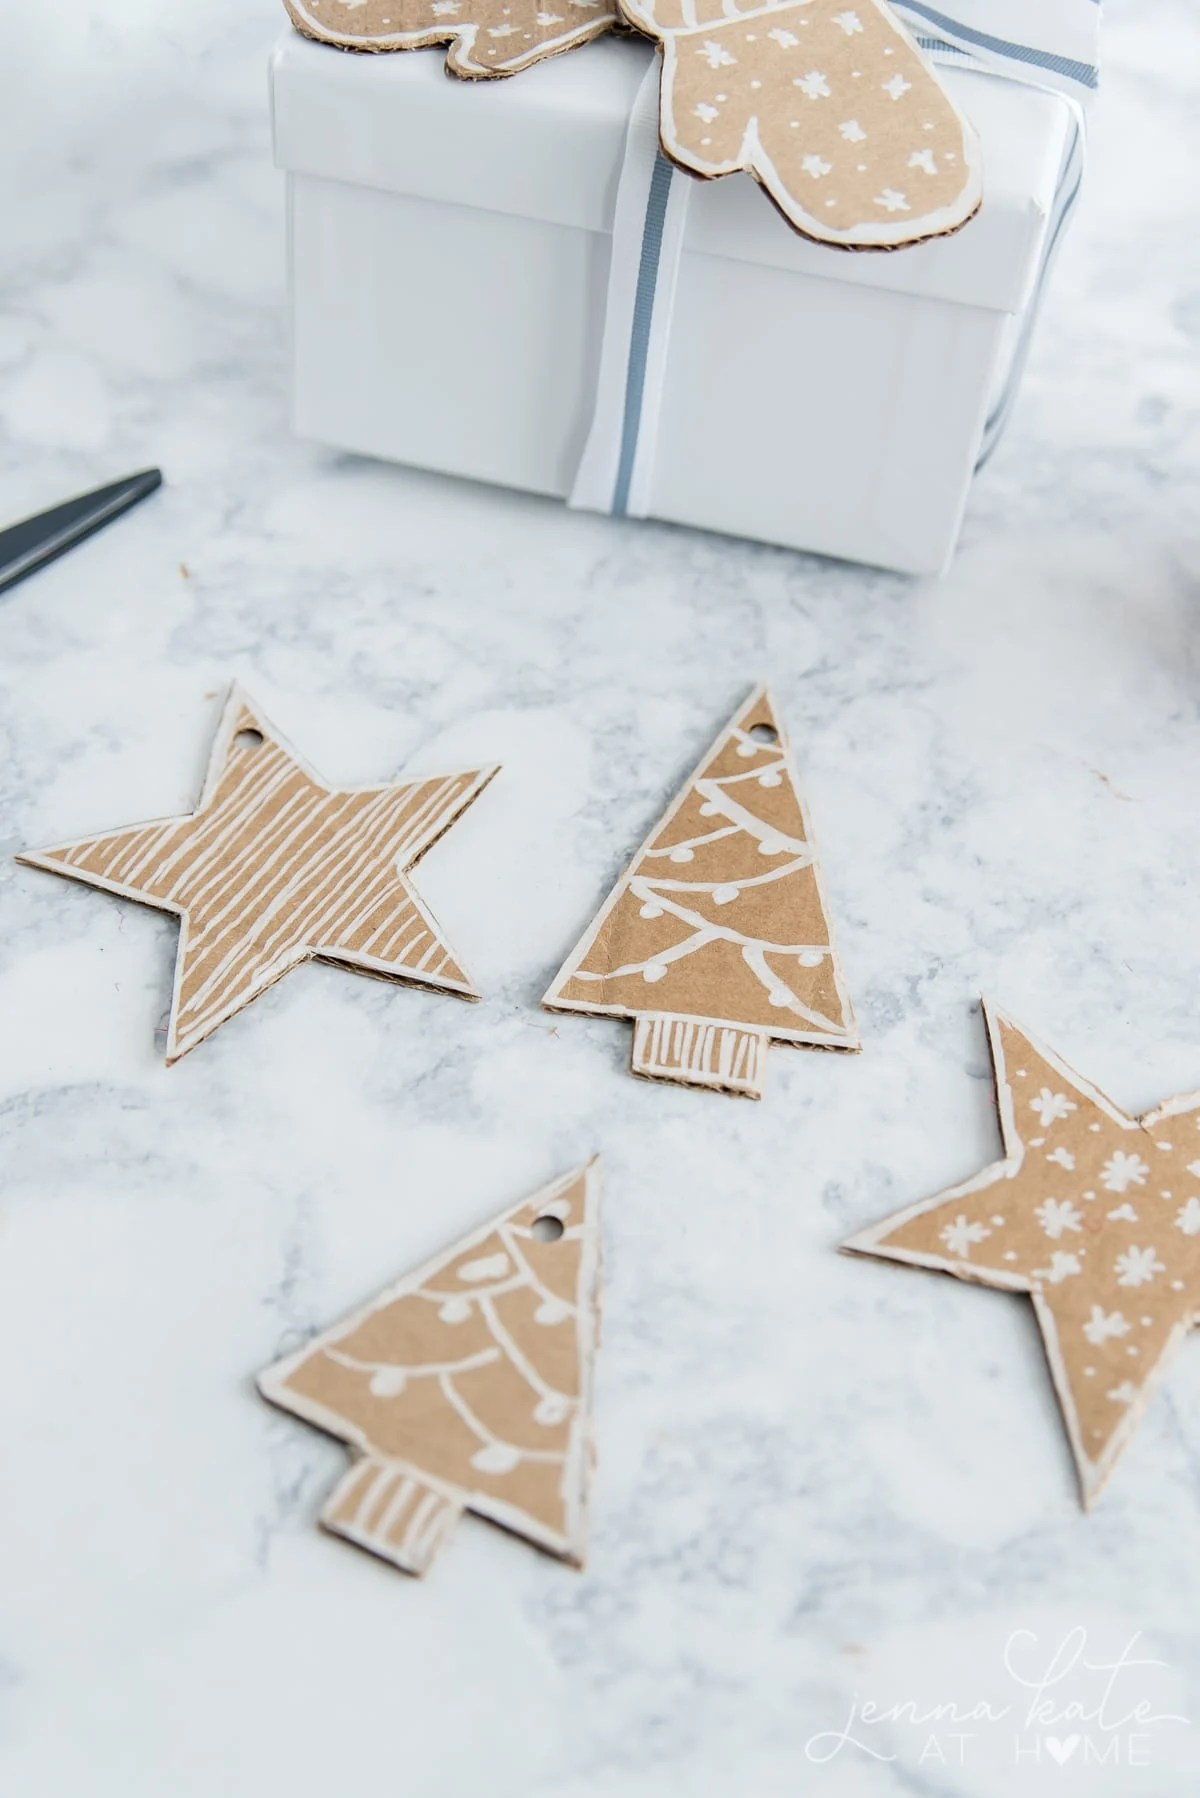 Christmas tree and star cut outs from cardboard for gift tags